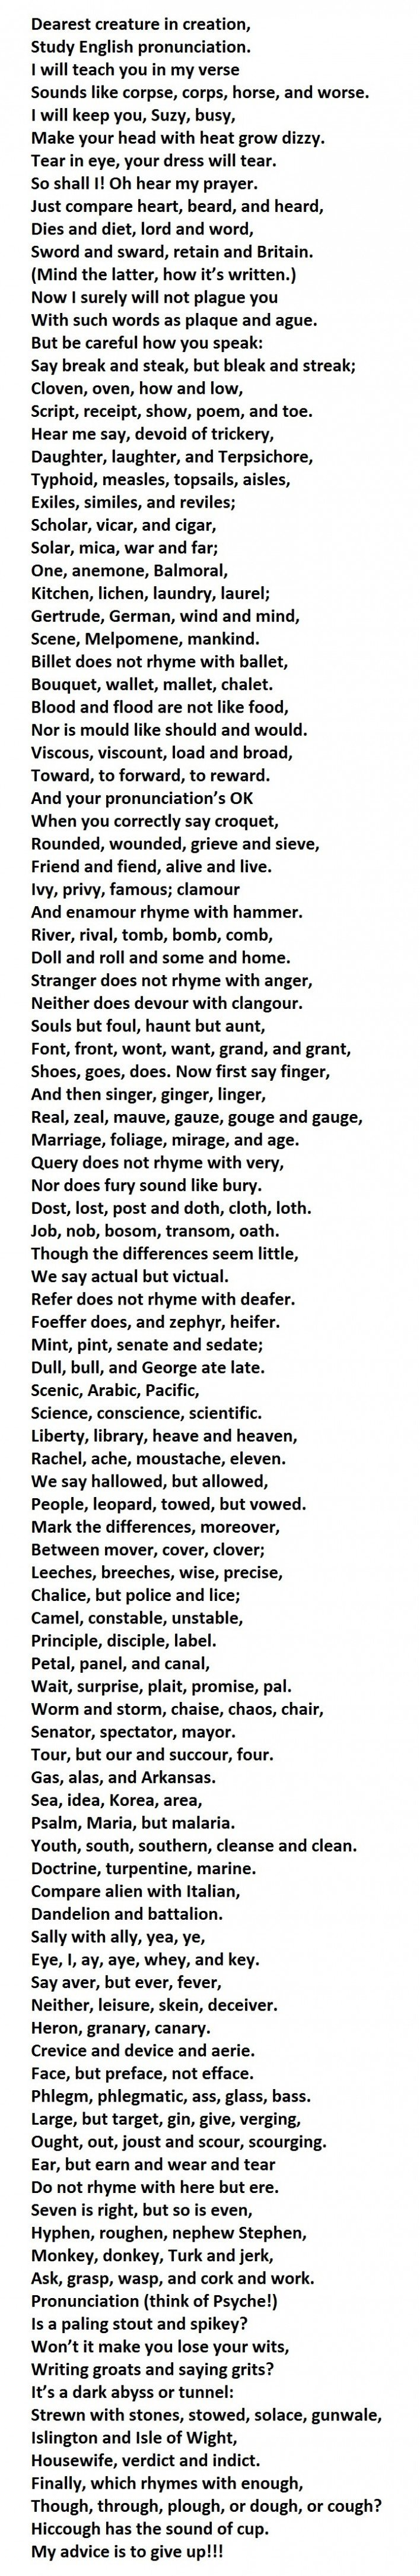 If You Can Pronounce This Entire Poem Your English Is Better Than